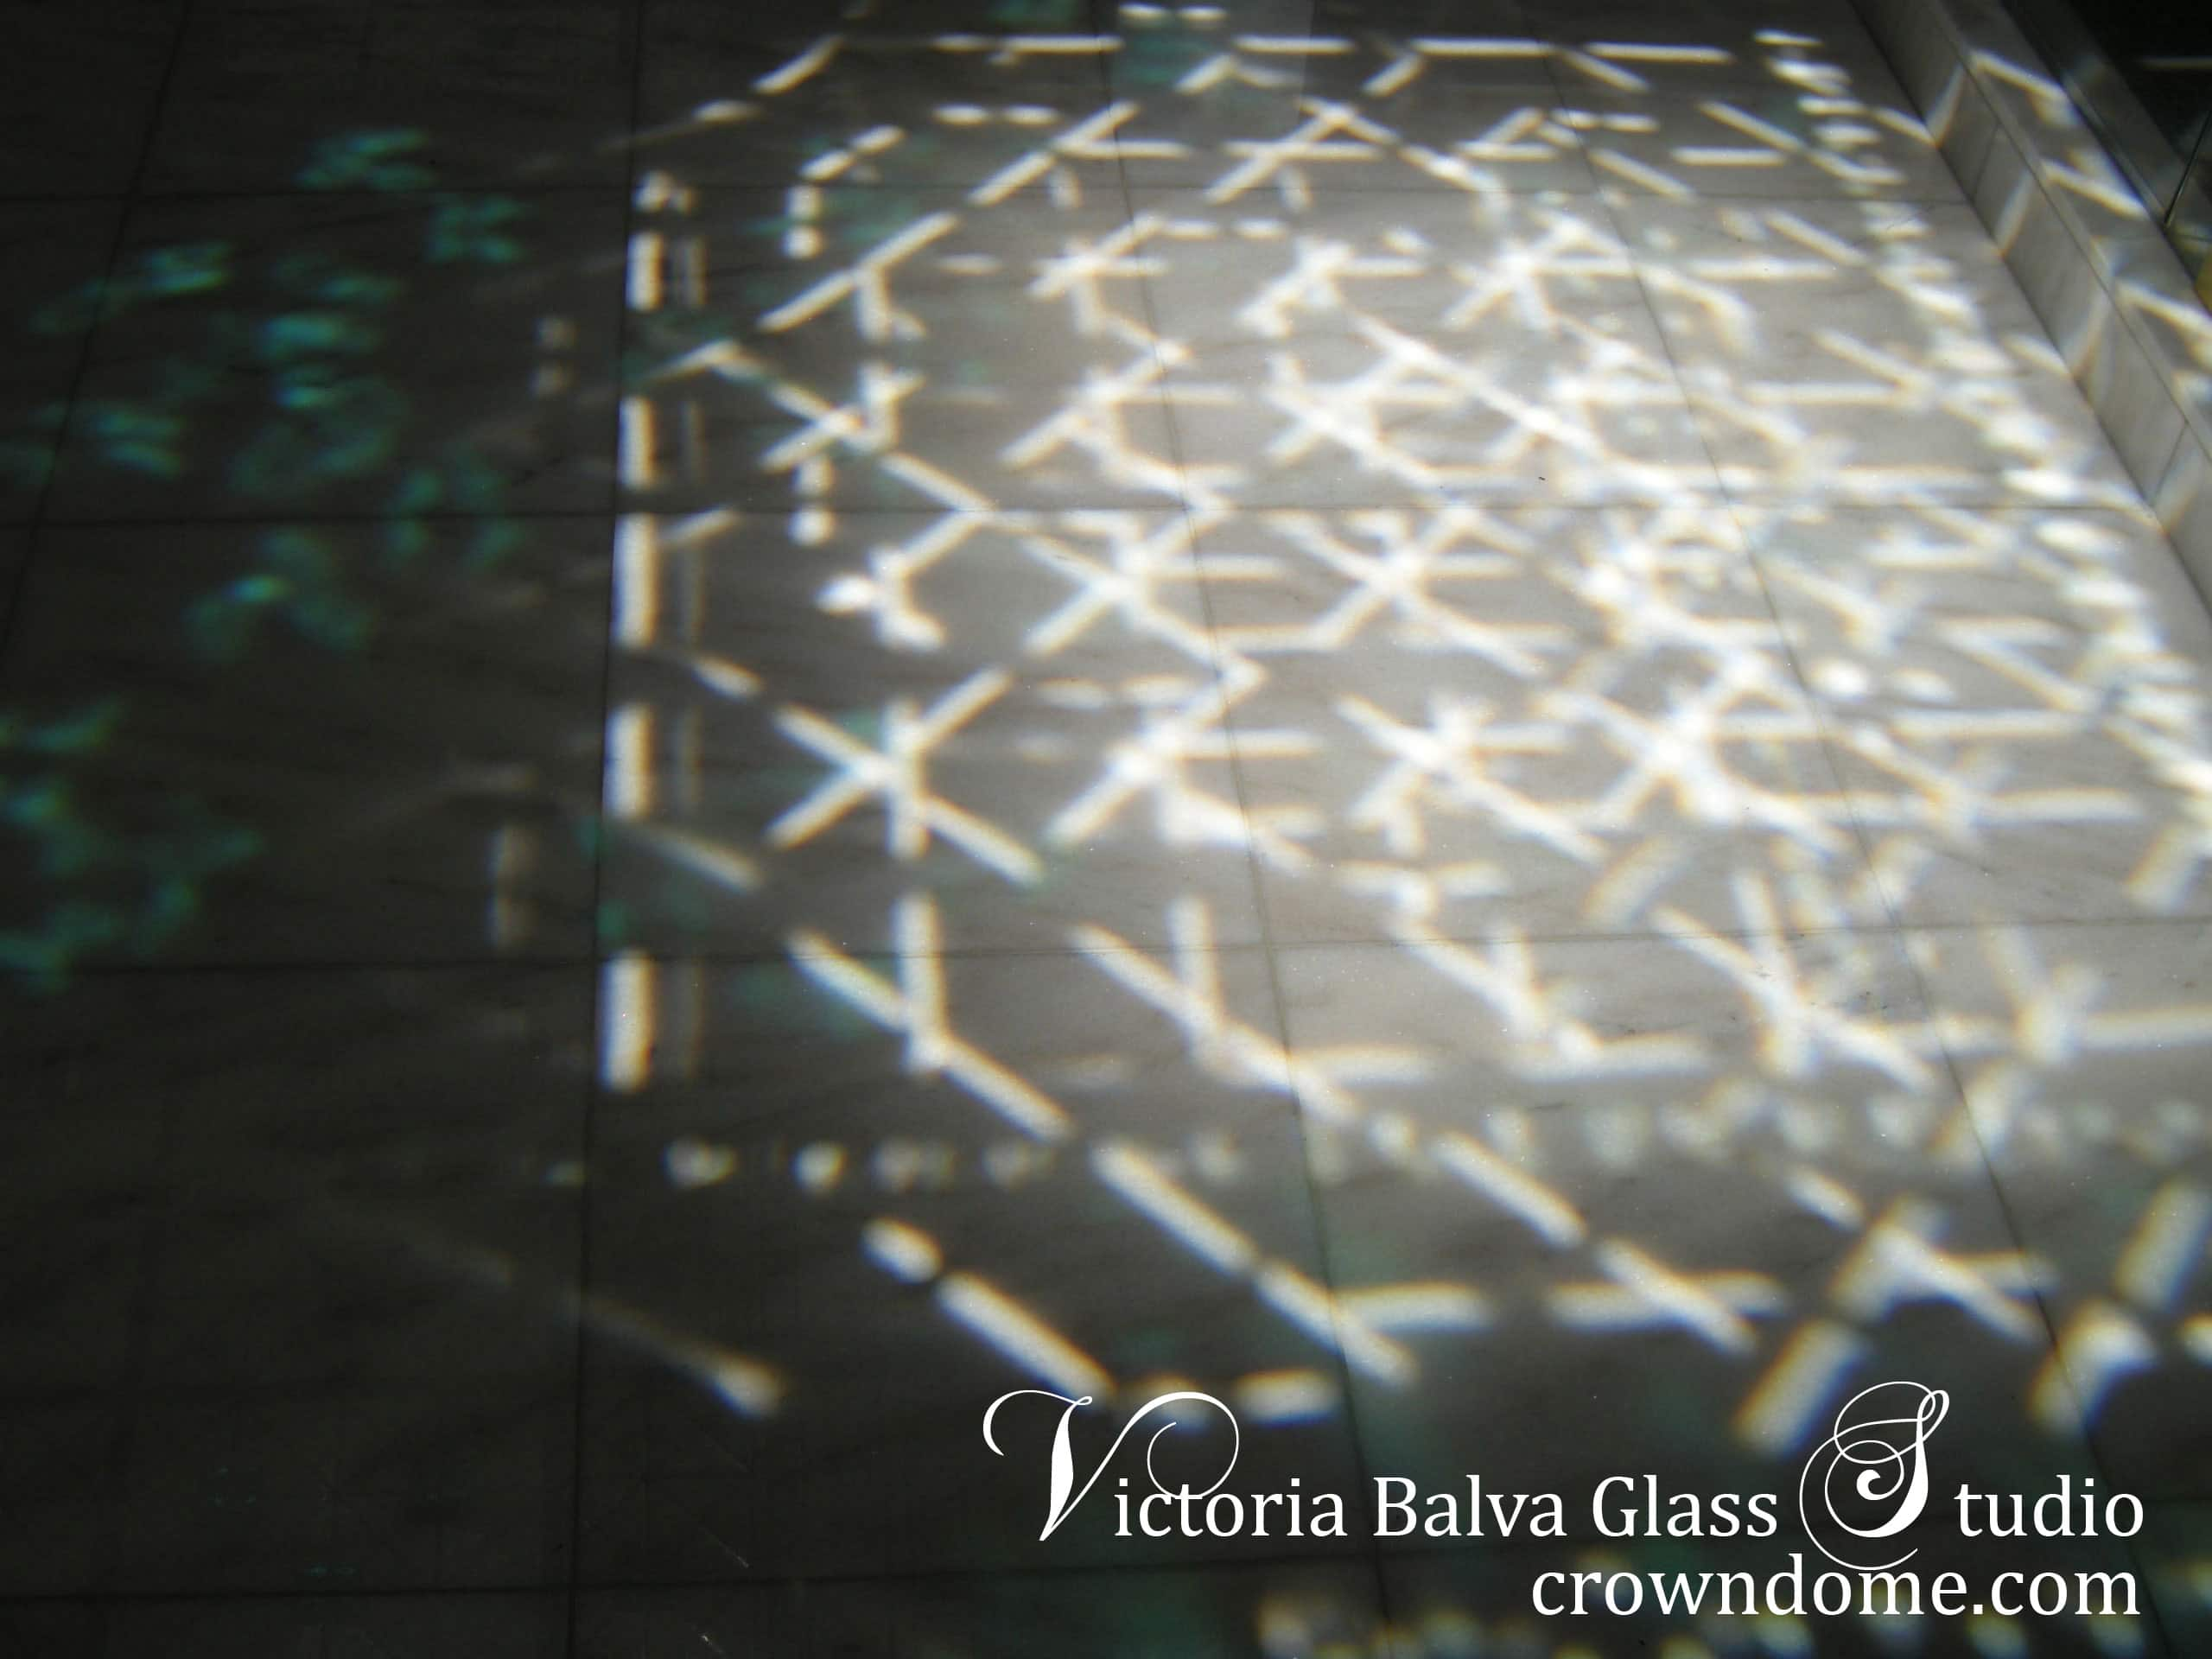 Beveled glass ceiling light show in the bathroom. Gorgeous bathroom stained beveled leaded glass skylight ceiling with emerald accent jewels and colored beveled glass for a bathroom of a custom built residence. Simple geometric stained leaded glass design with custom beveled glass and large emerald jewels by stained glass artist Victoria Balva